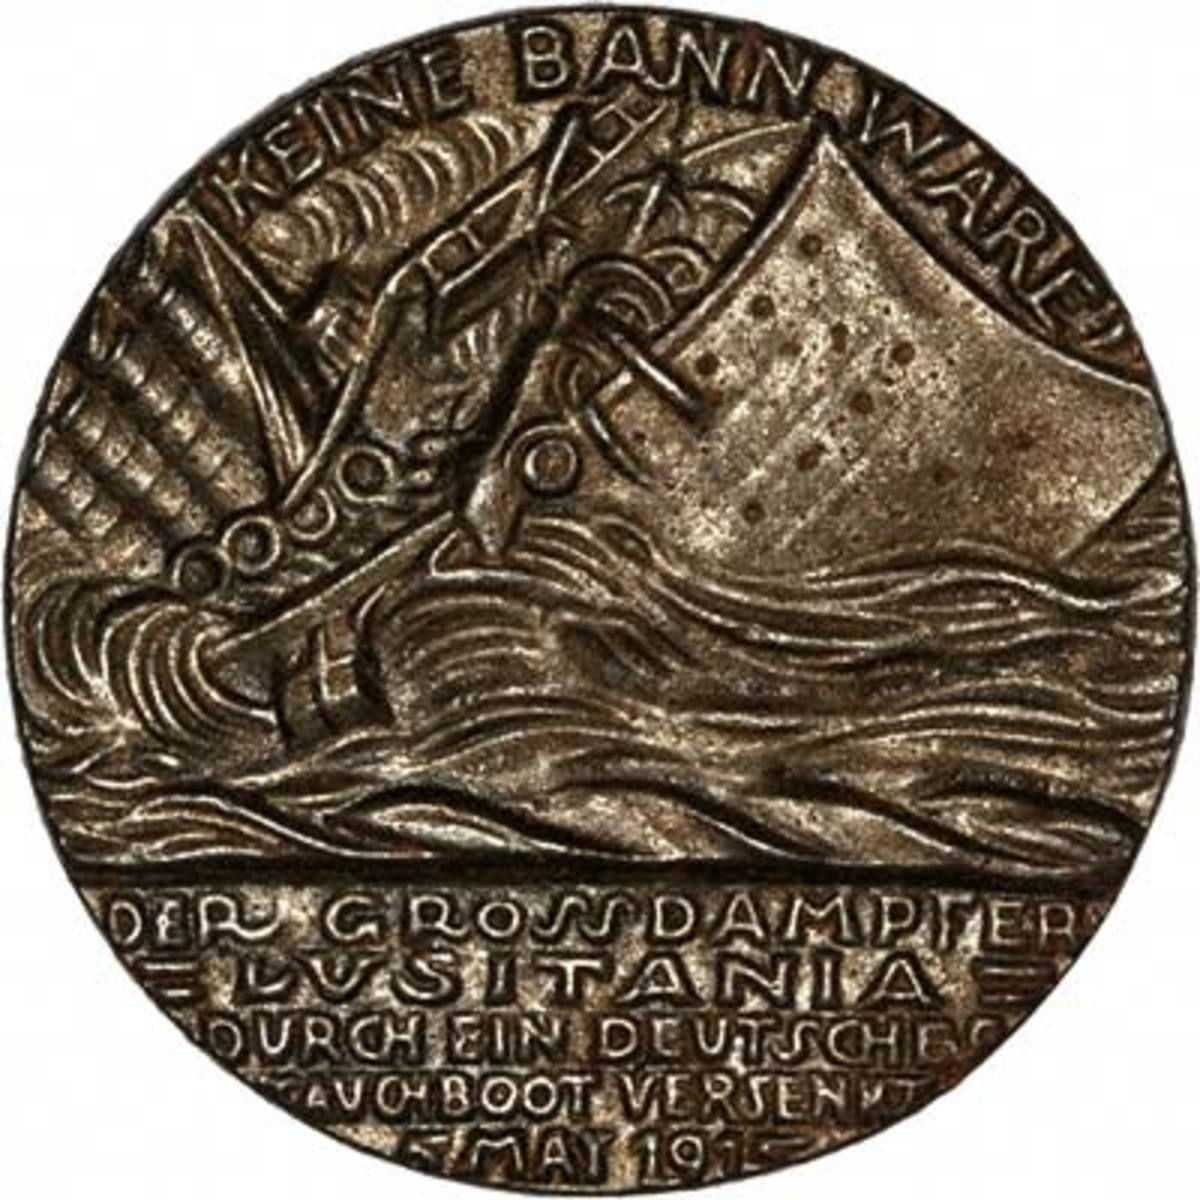 Special death head medal minted by the Germans to celebrate the sinking of the RMS Lucitania